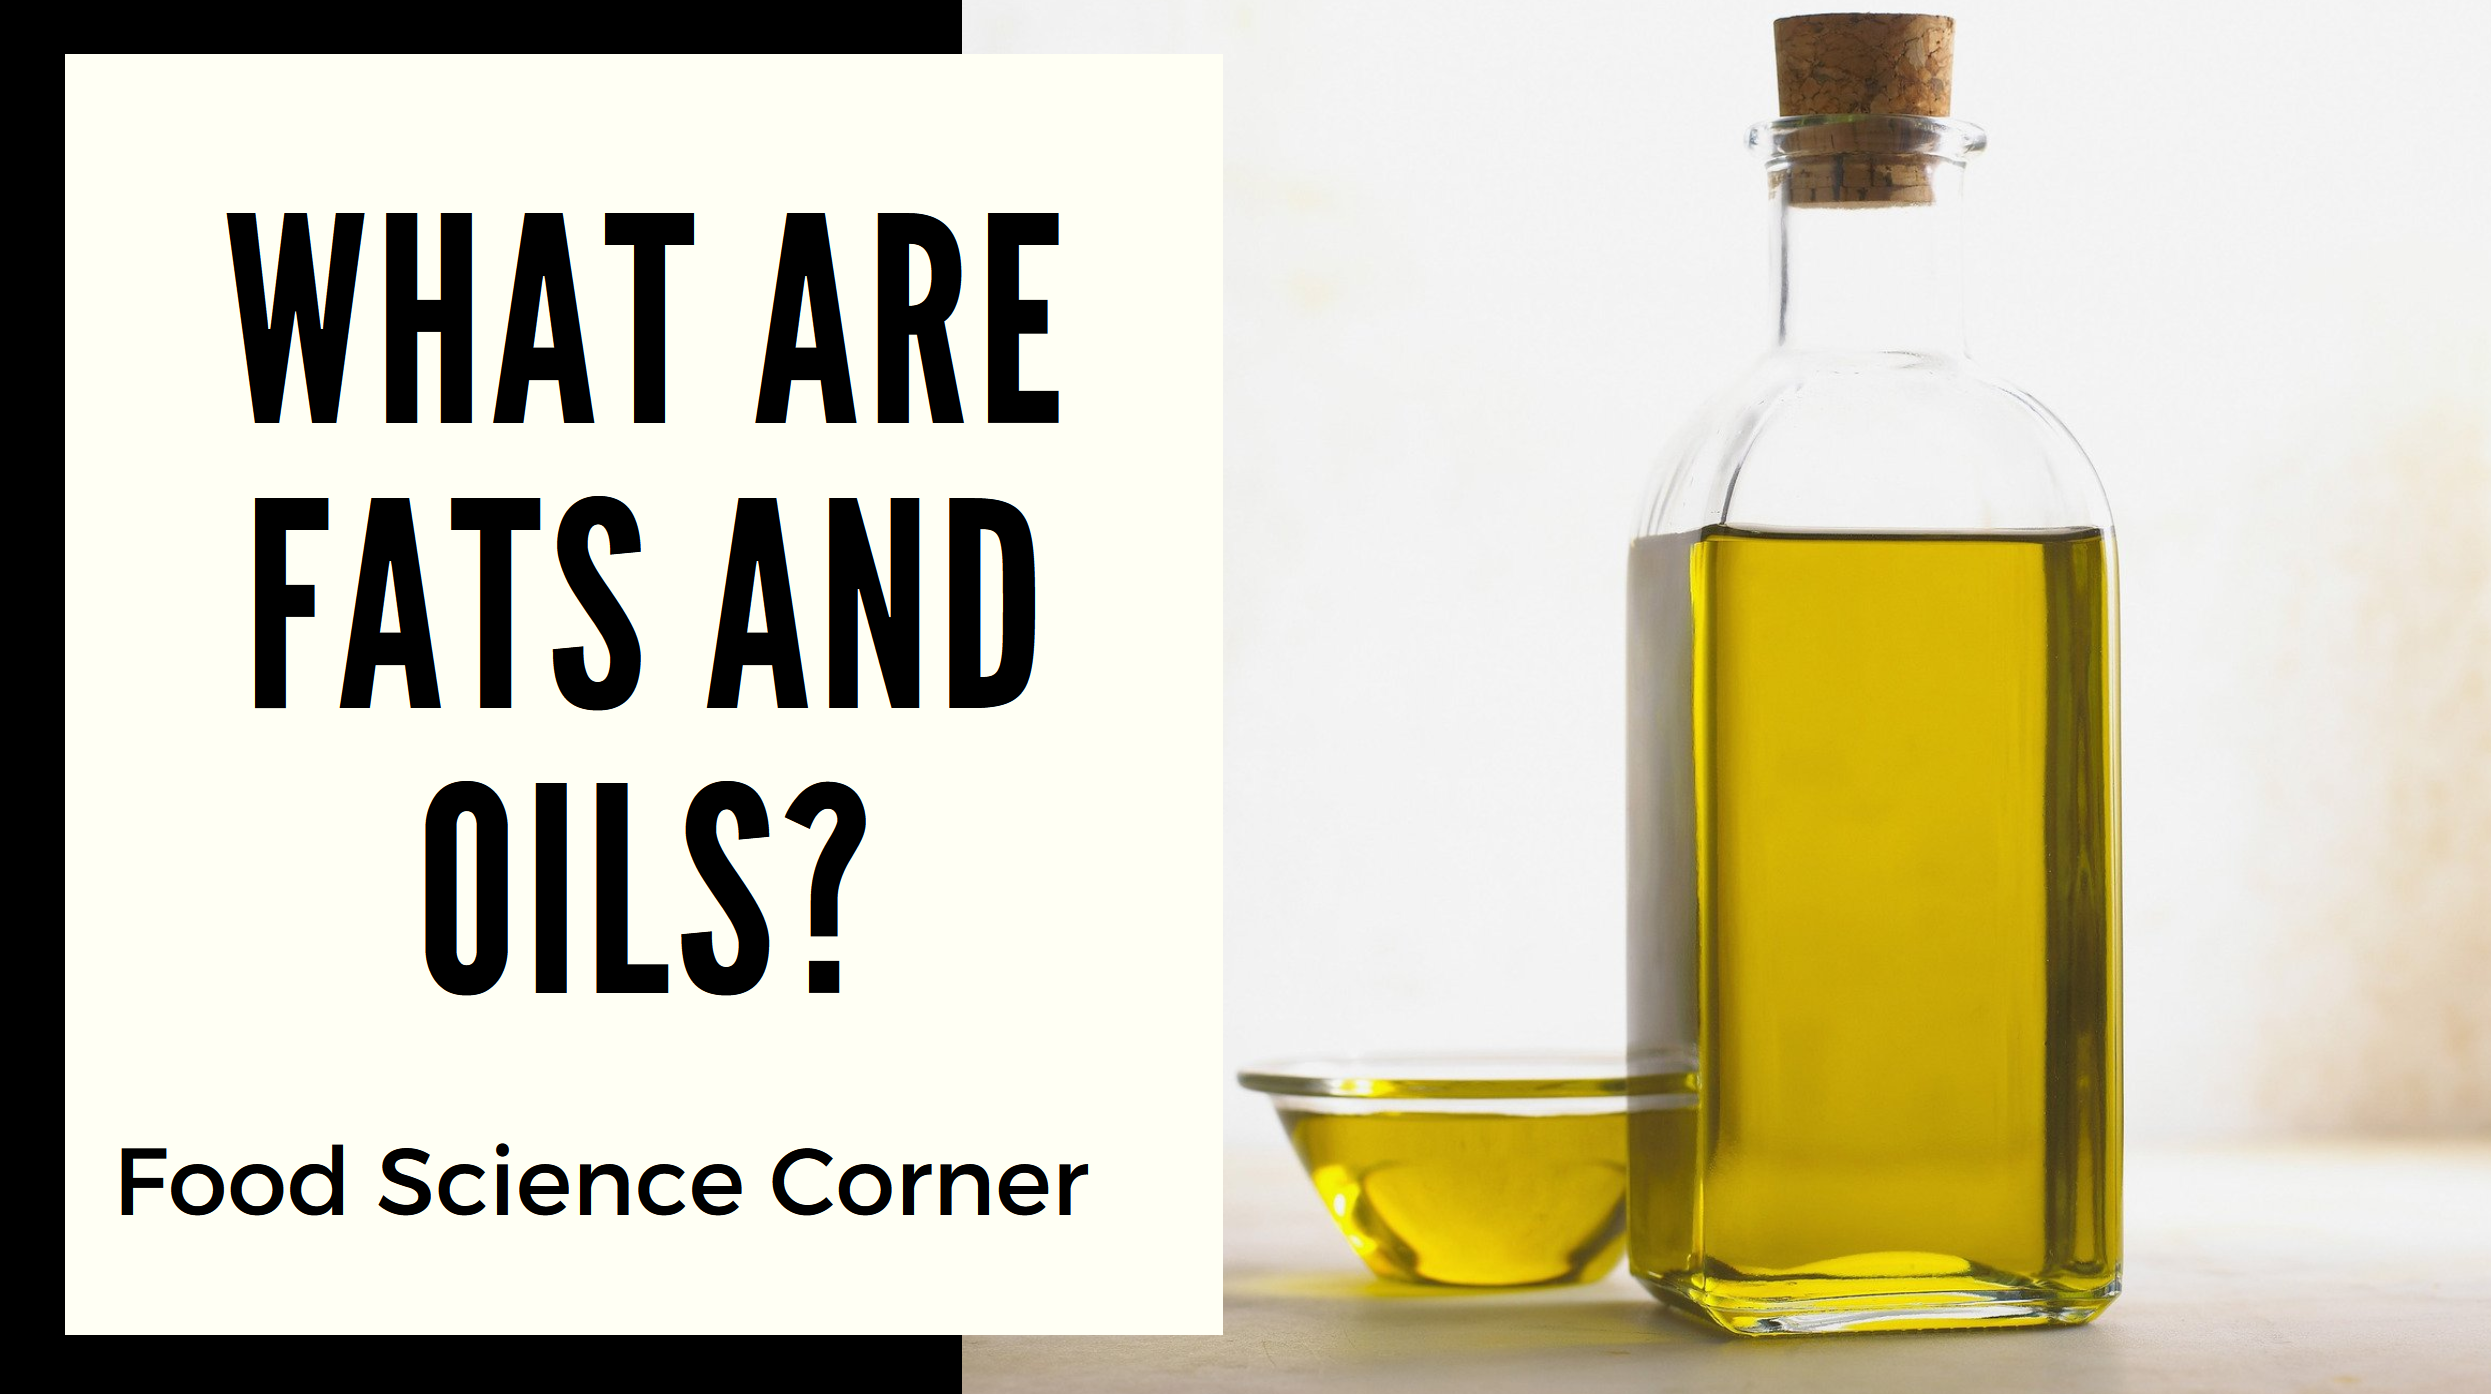 Food Science Corner: What are Fats and Oils?